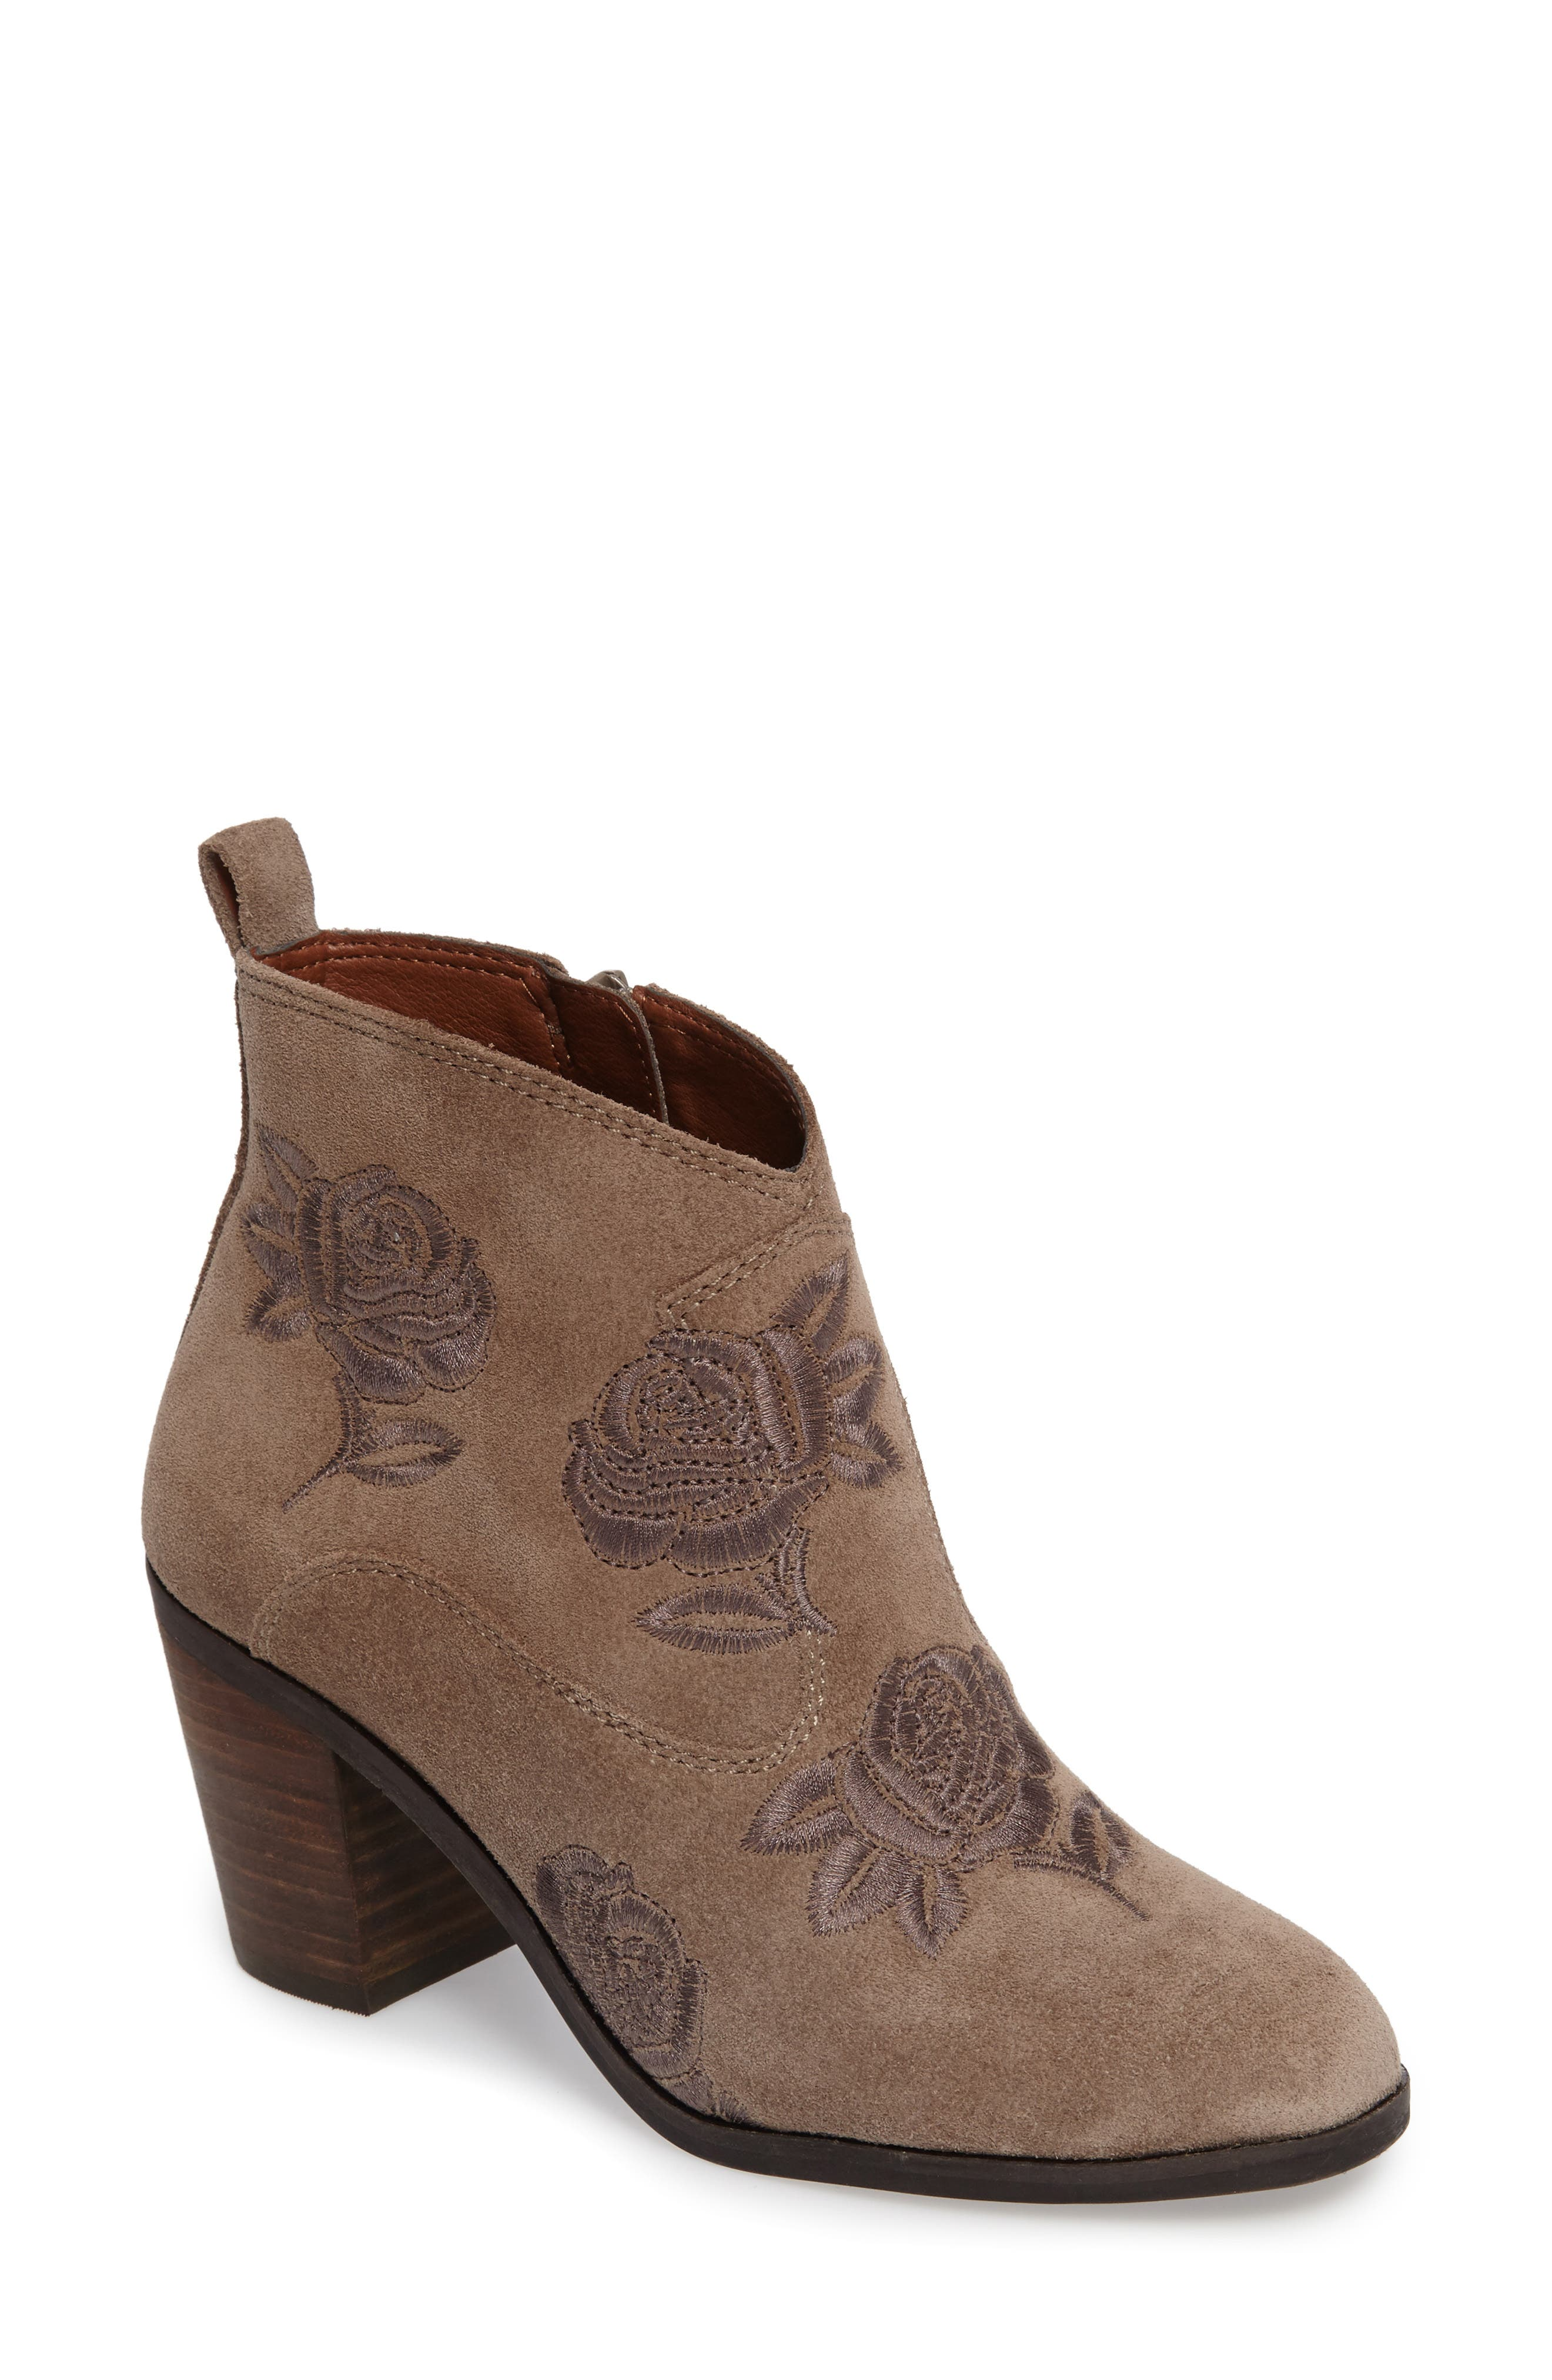 Alternate Image 1 Selected - Lucky Brand Pexton Embroidered Bootie (Women)